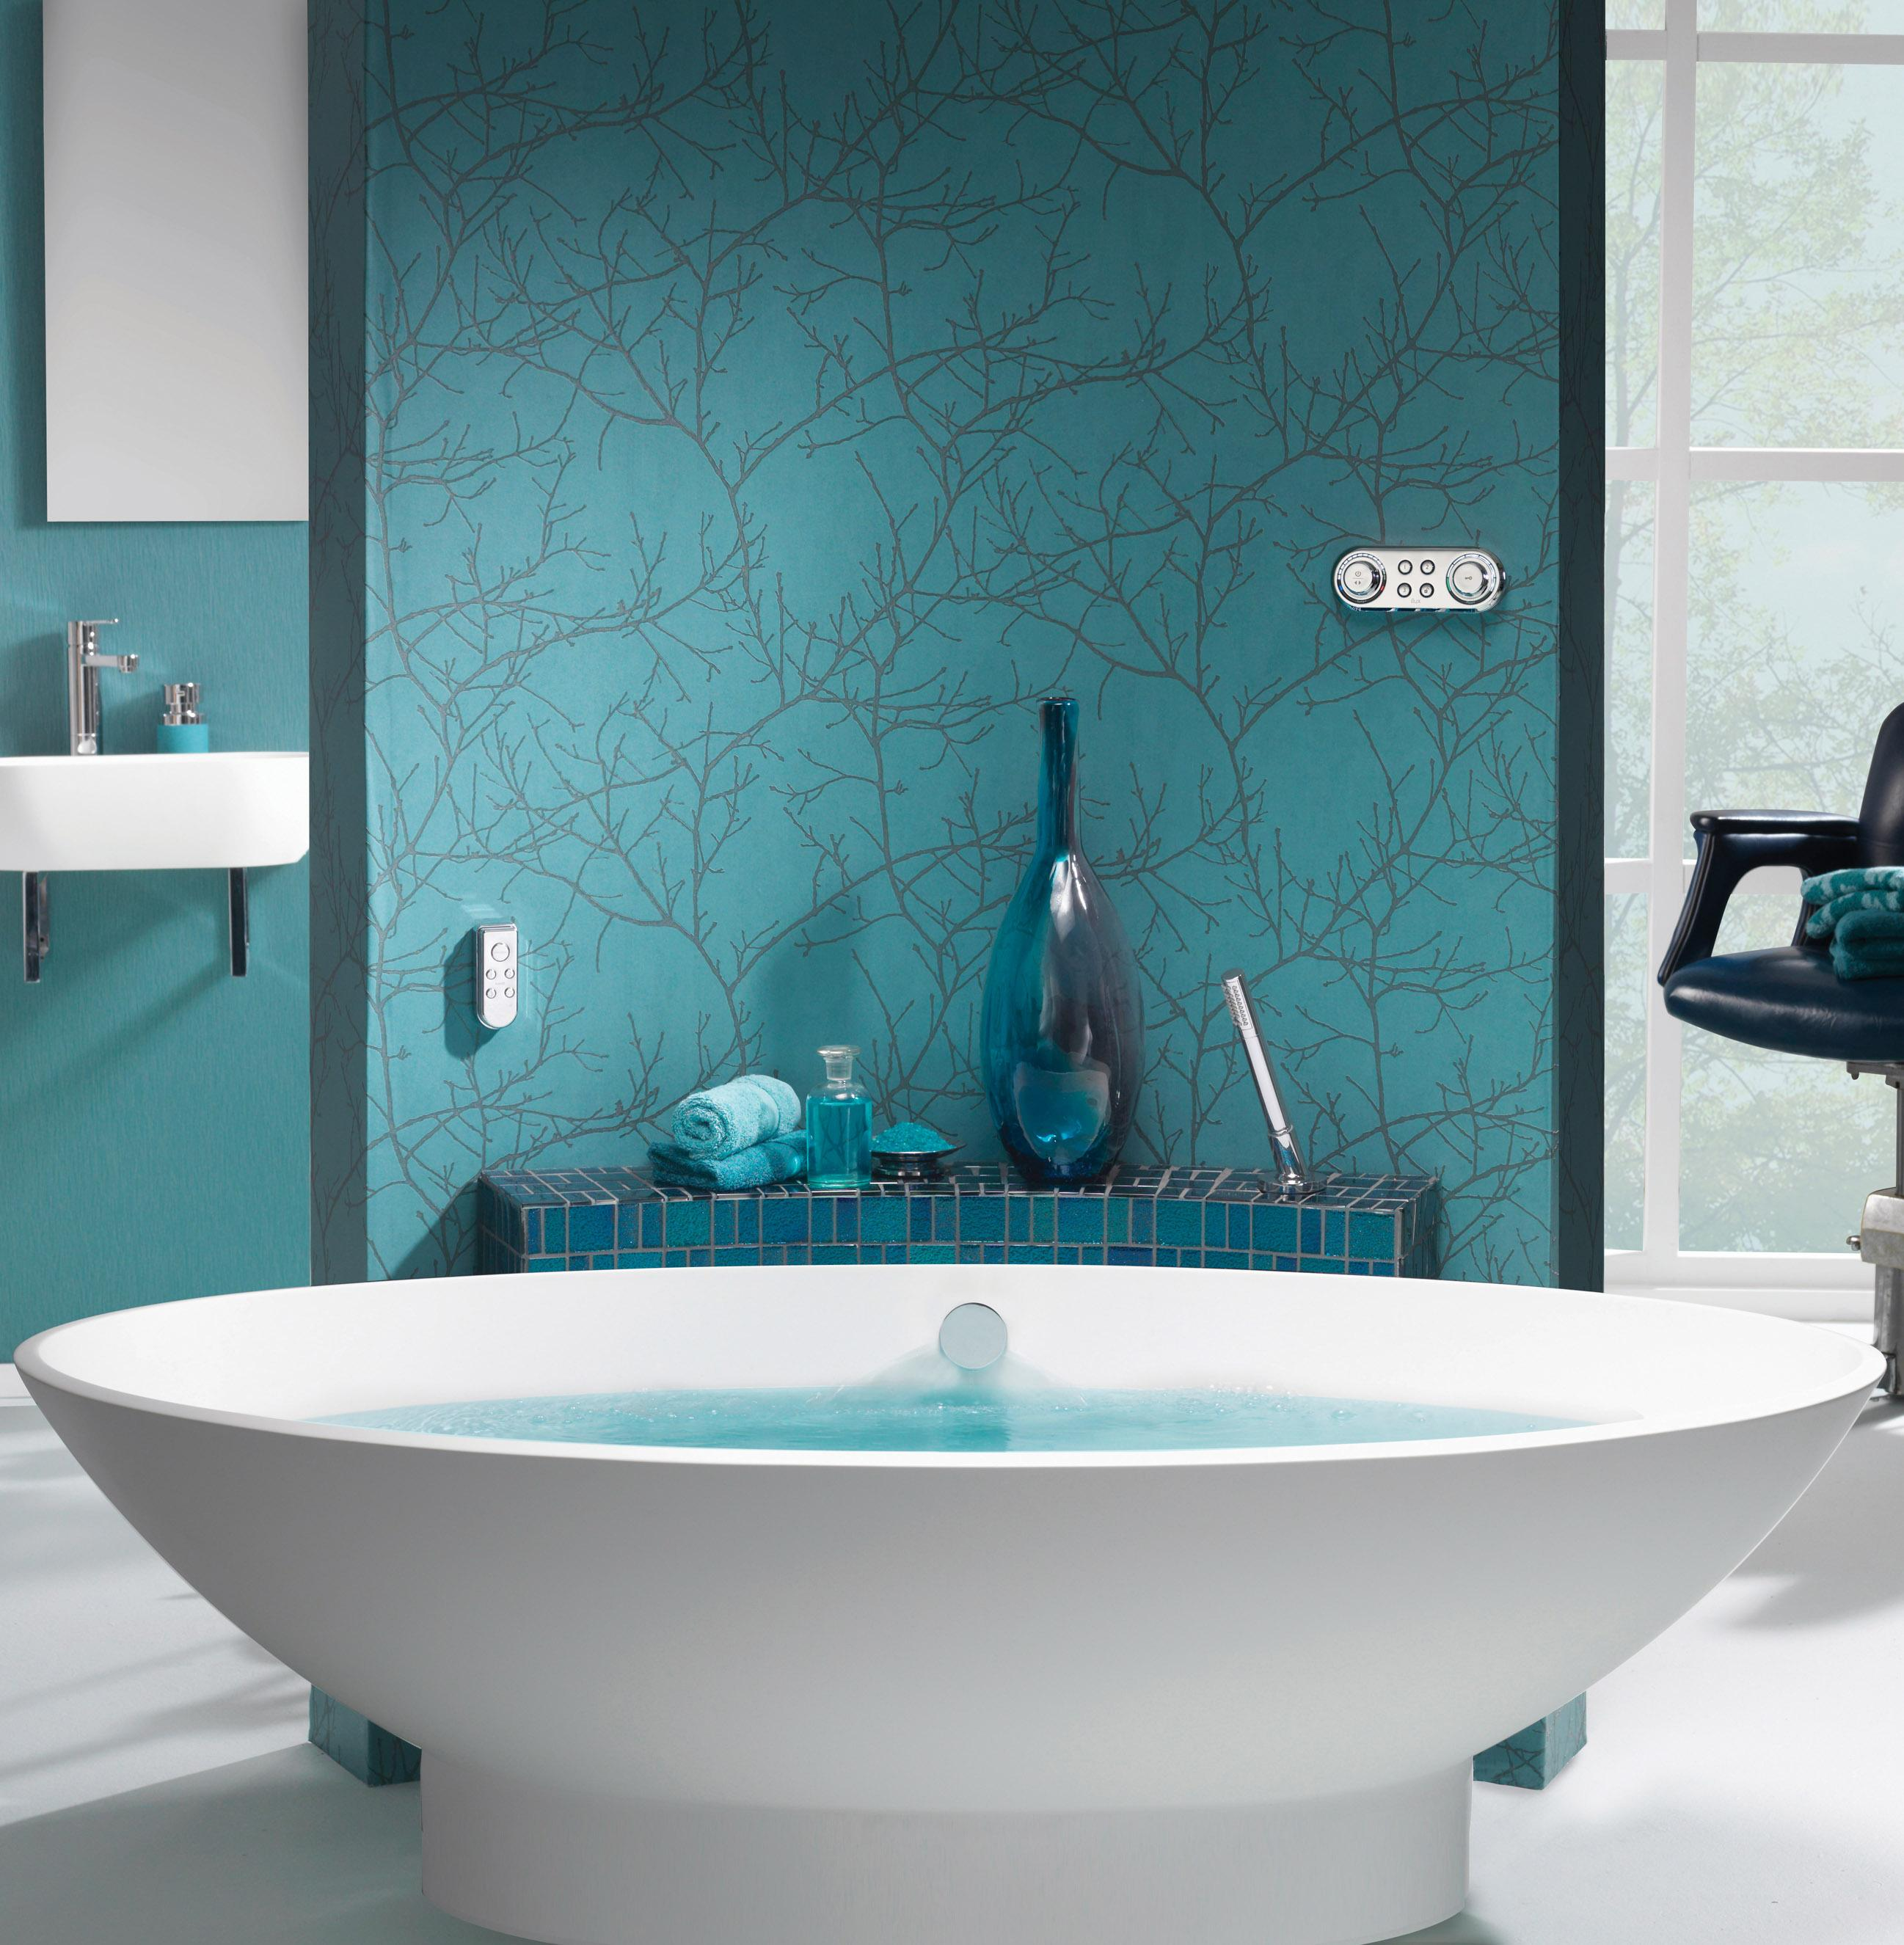 Self standing bath against turqouise wallpaper